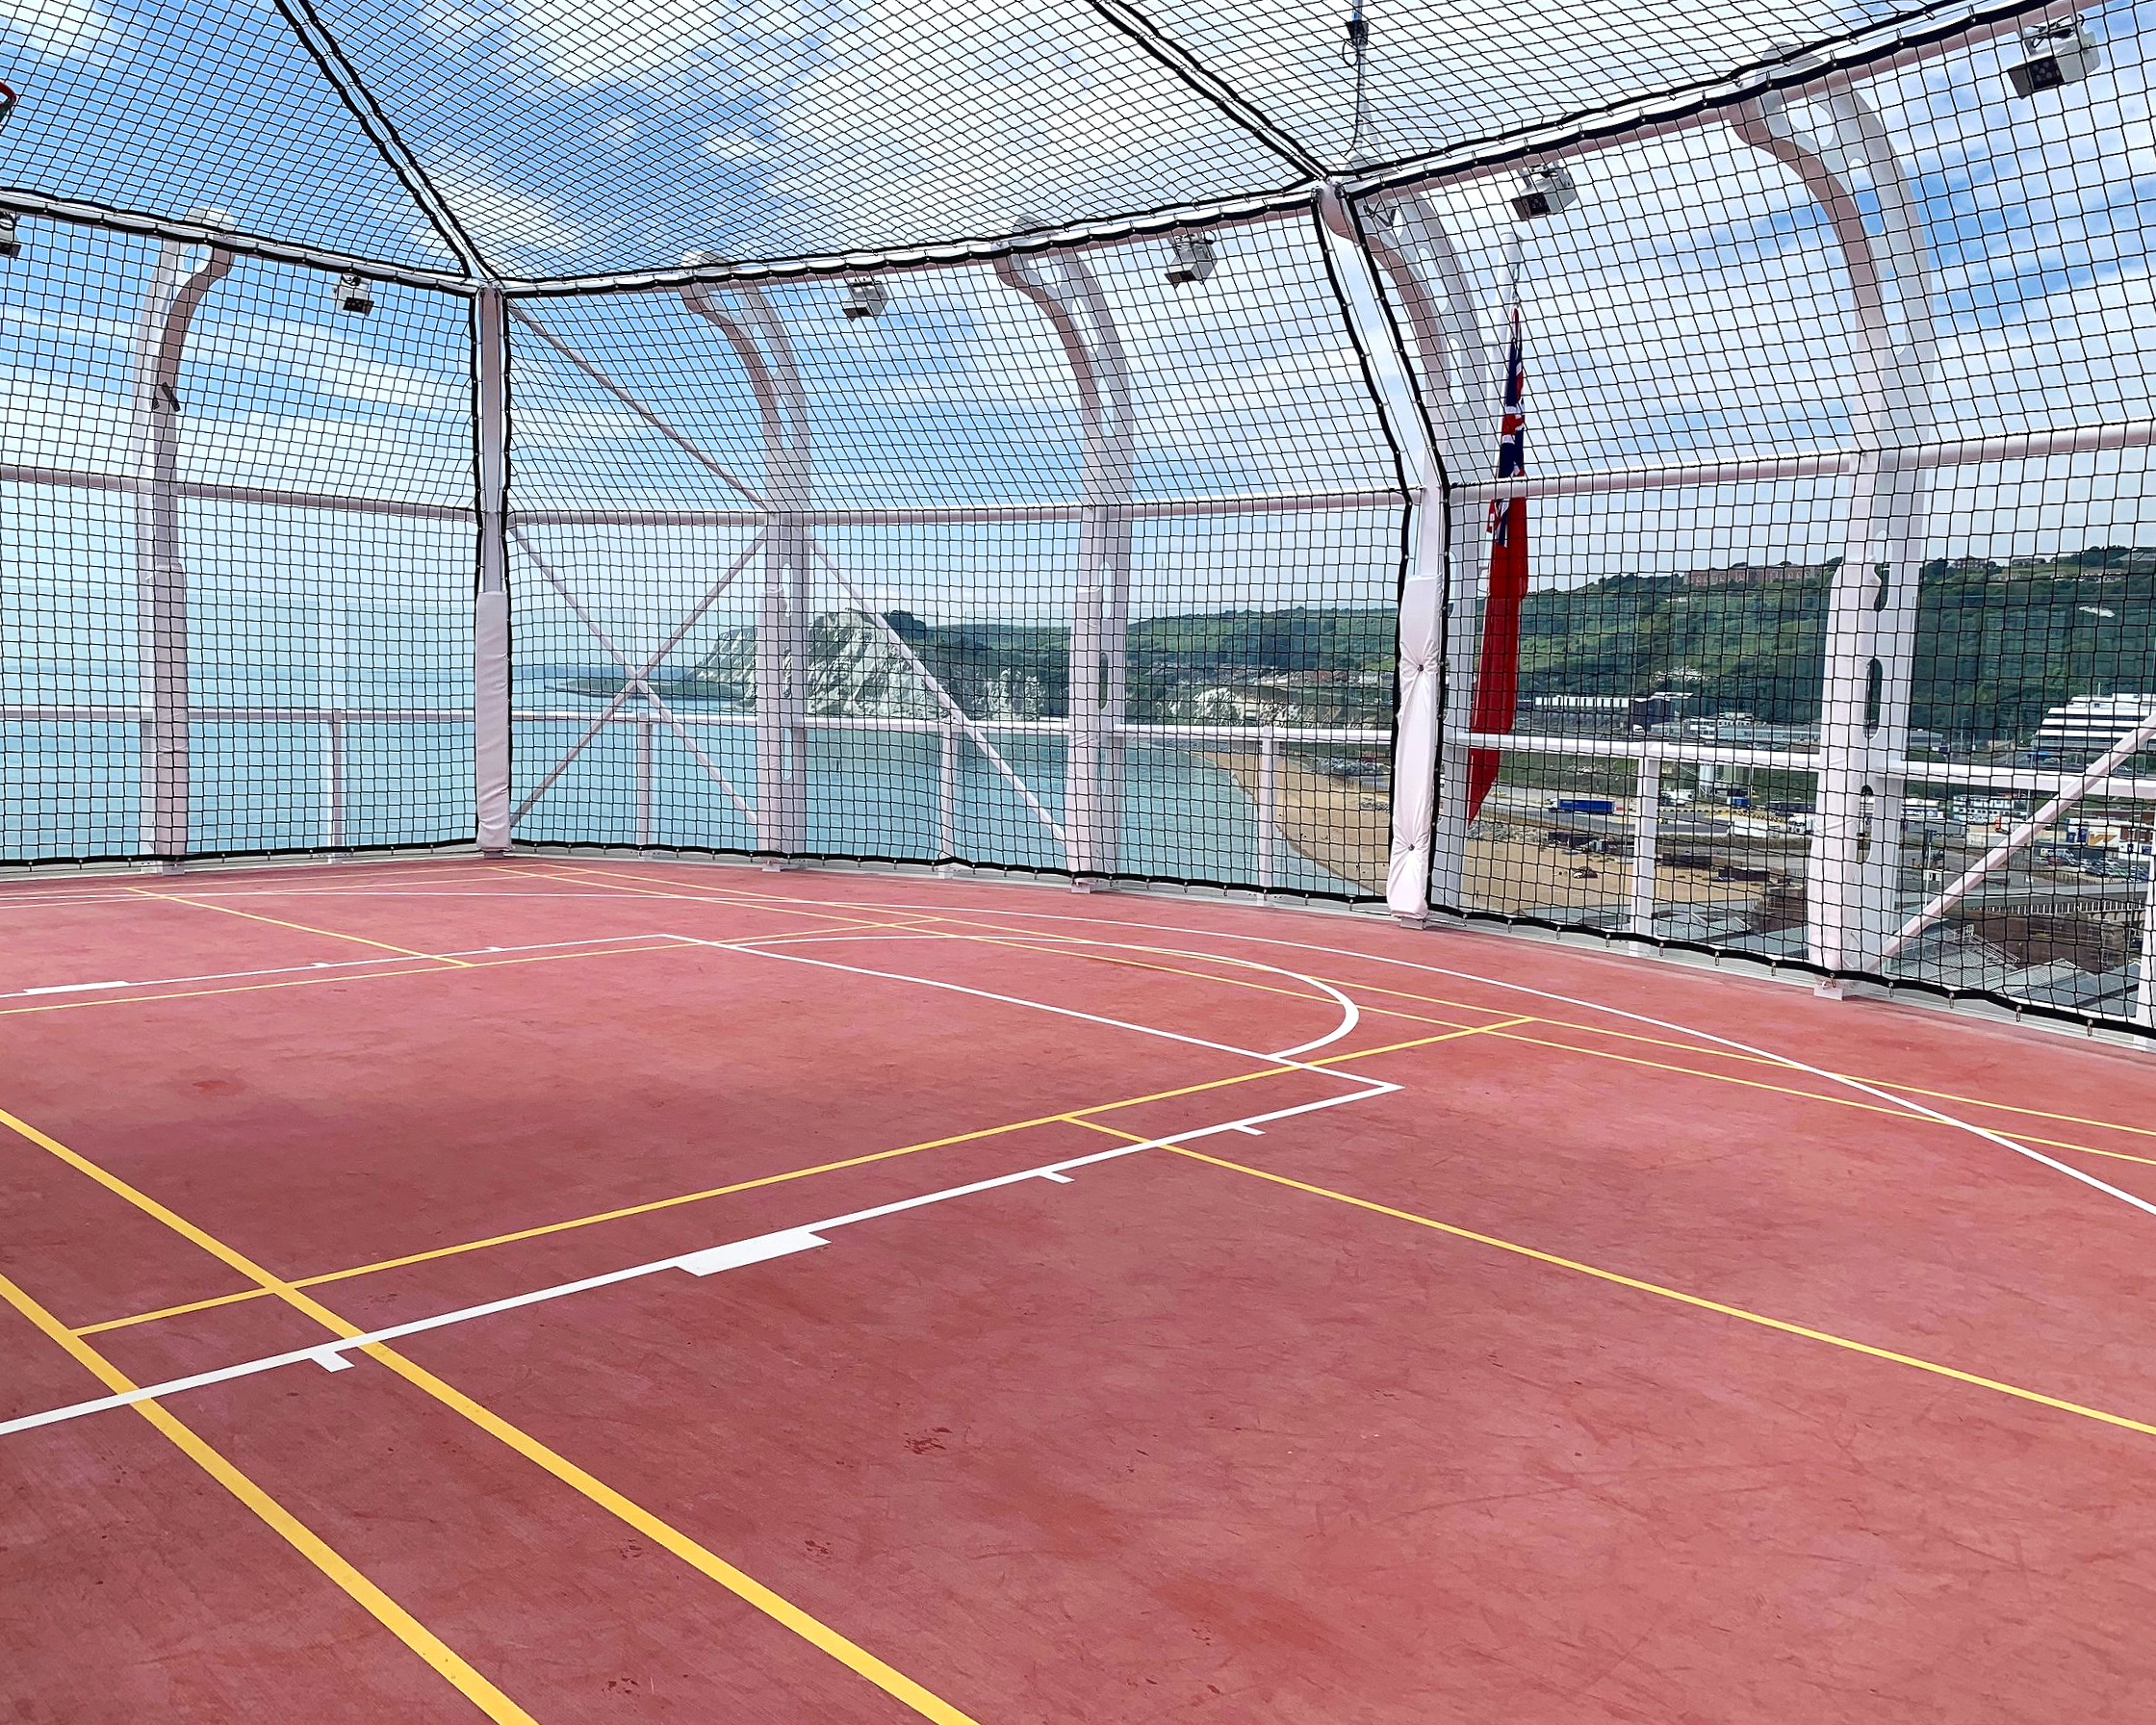 The sports court.